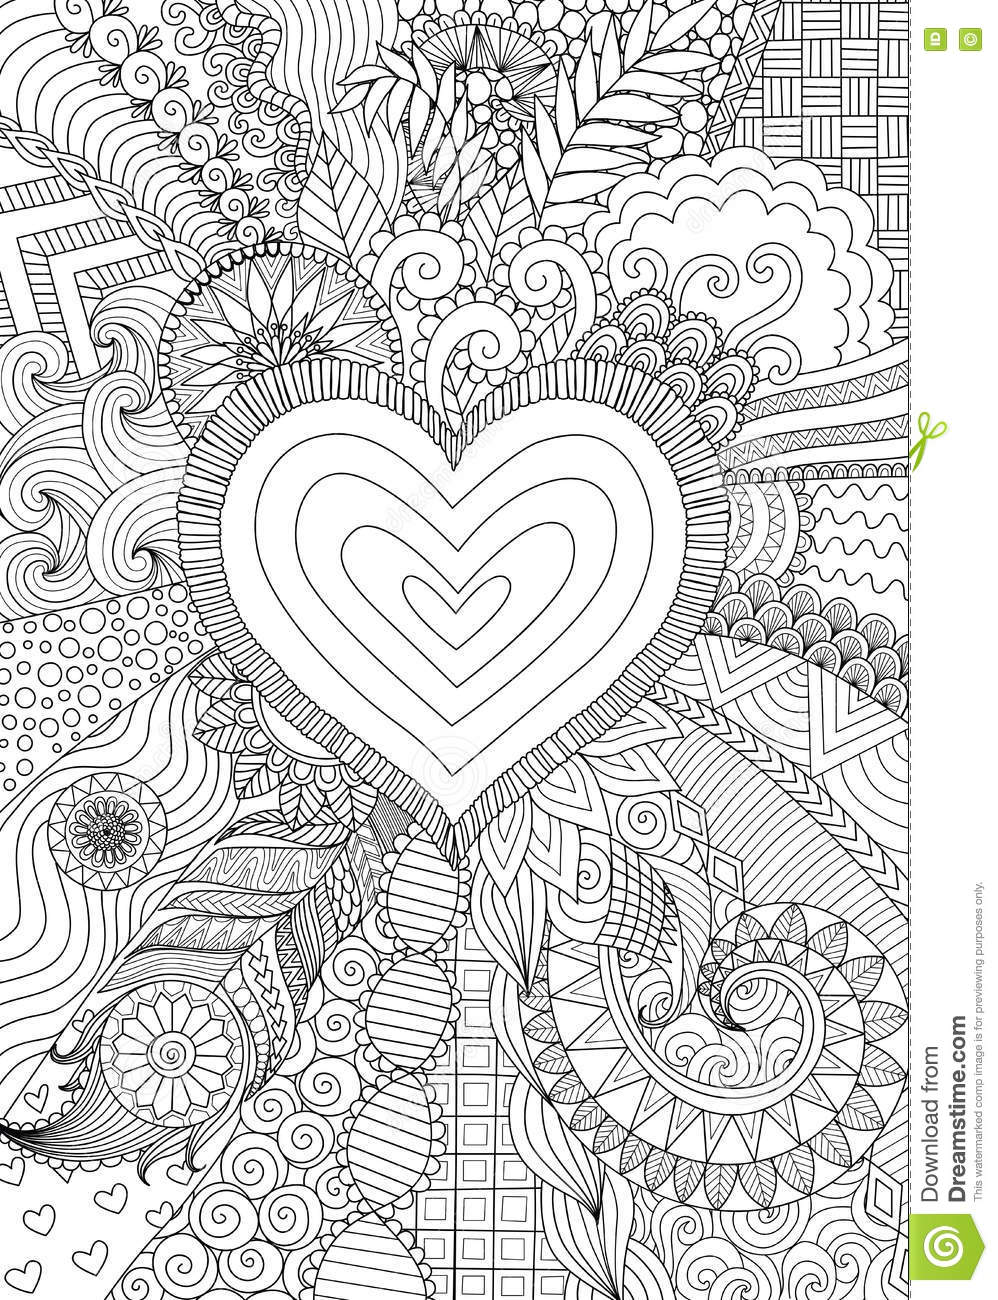 Line Art Design Abstract : Zendoodle design of heart shape on abstract line art